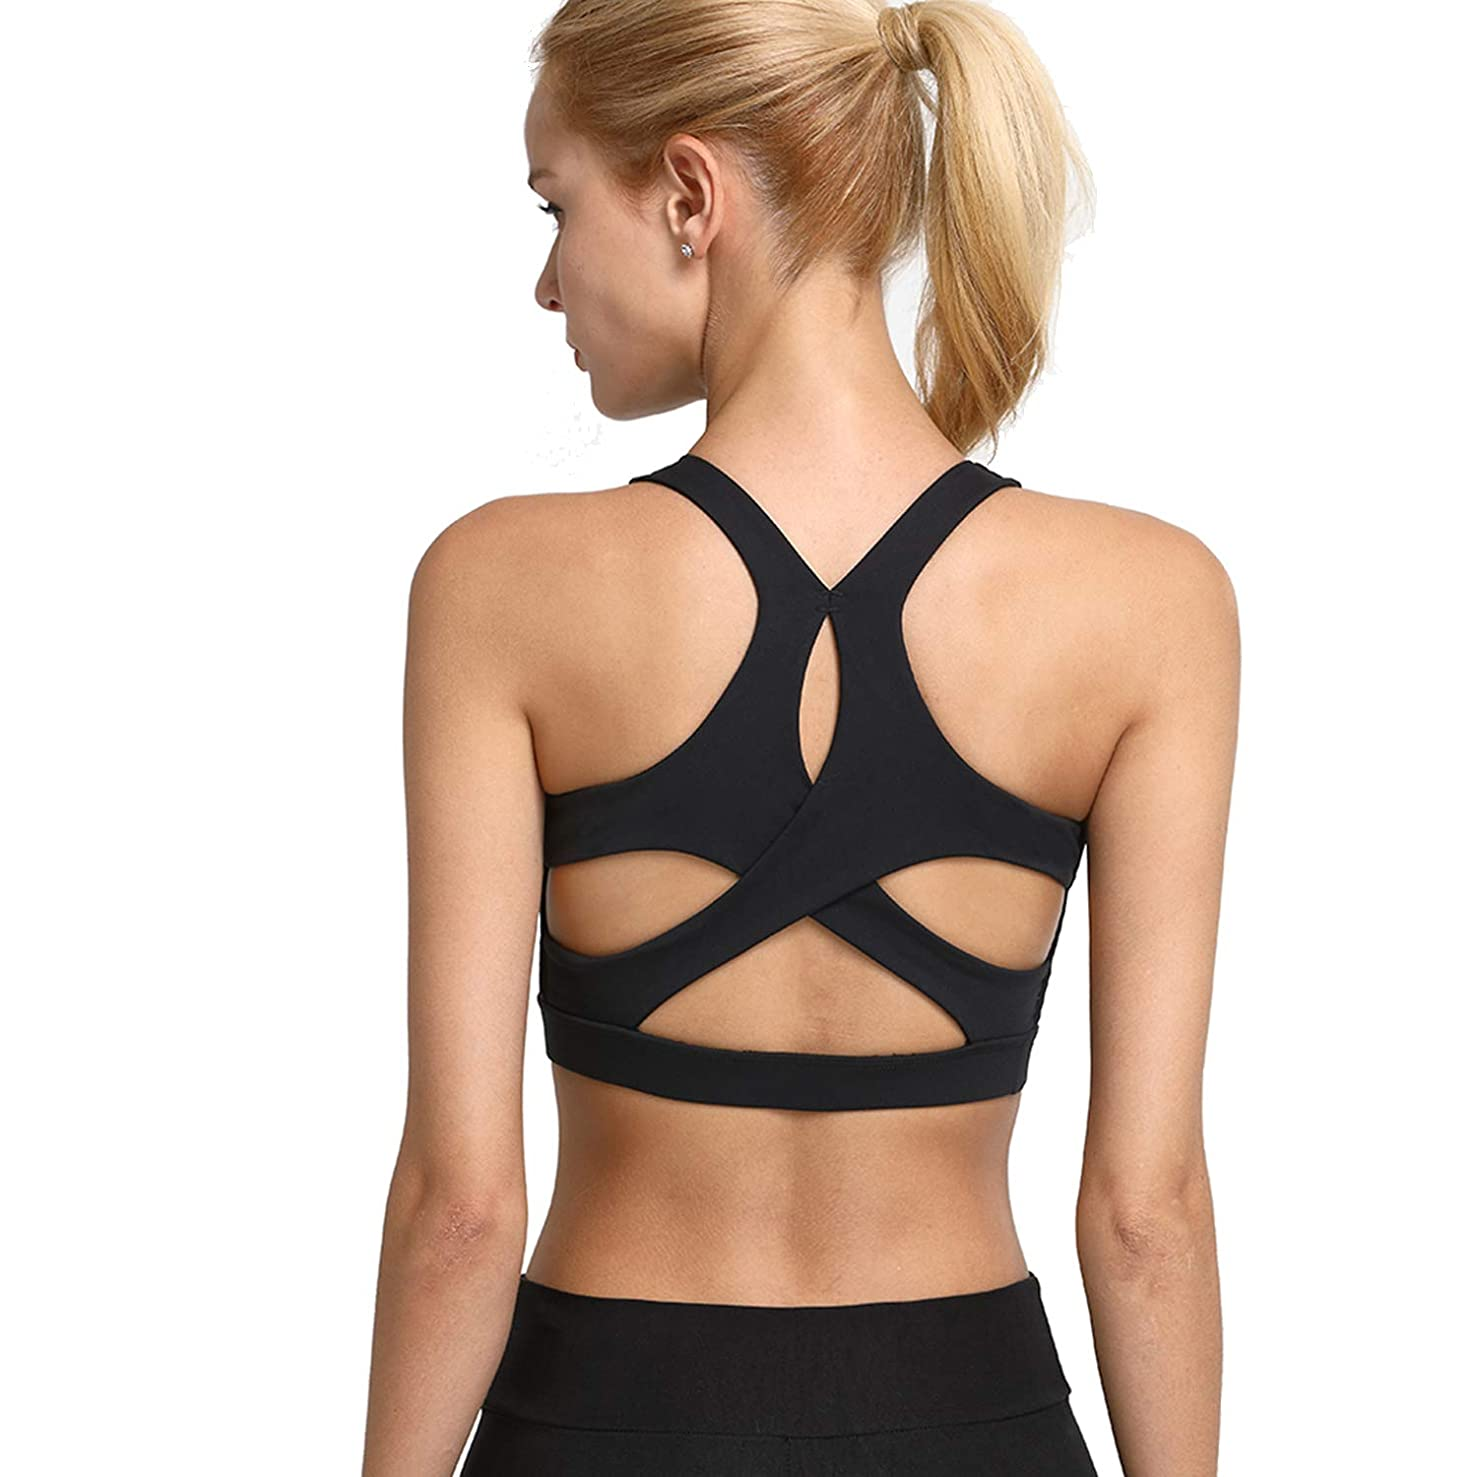 Helisopus Women's Crisscross Back Yoga Gym Running Sports Bra Actives and Fitness Tops